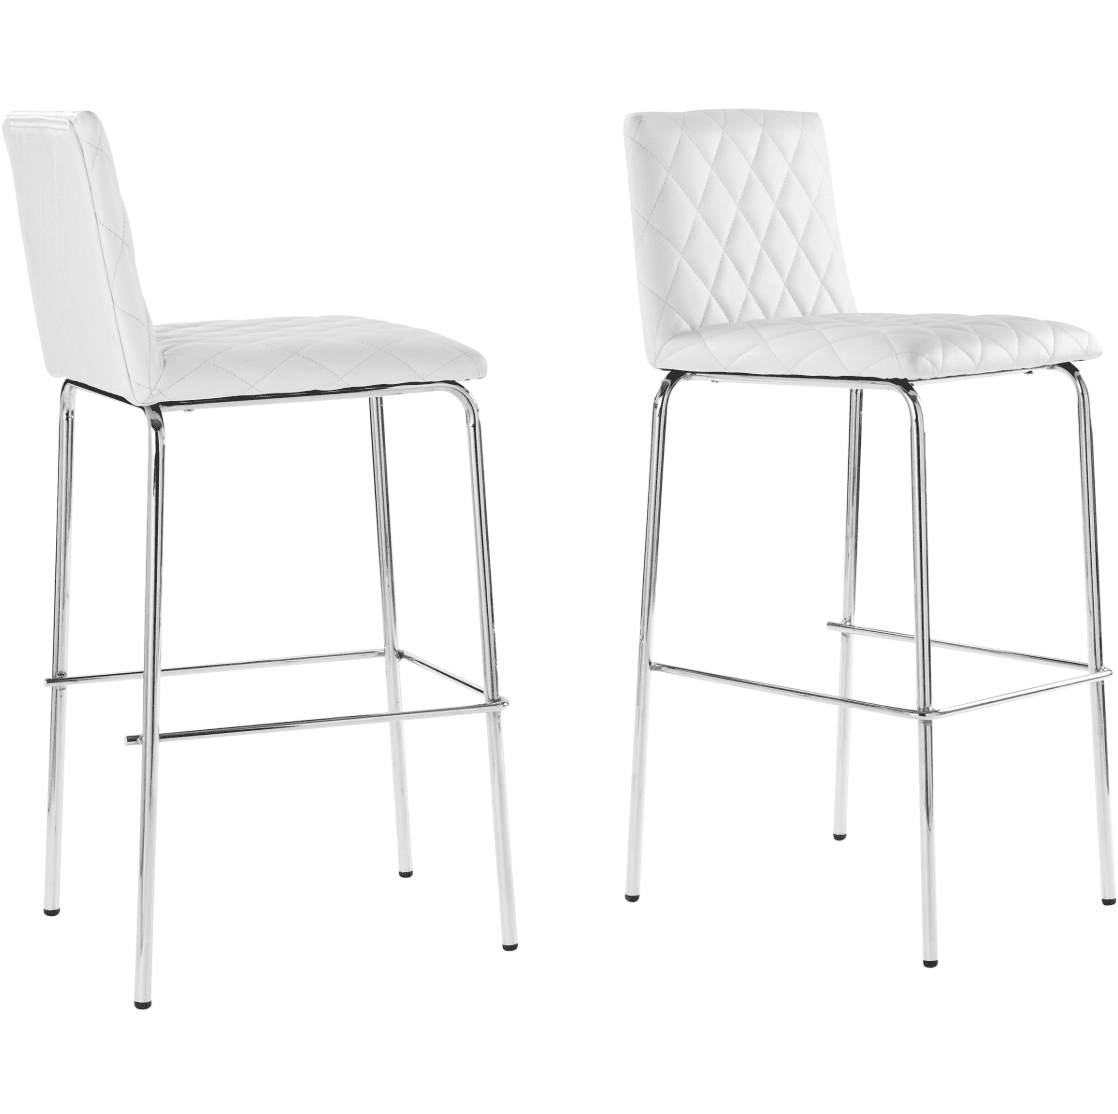 Superb 25 Cheap Bar Stools To Shop For Your Home Gmtry Best Dining Table And Chair Ideas Images Gmtryco